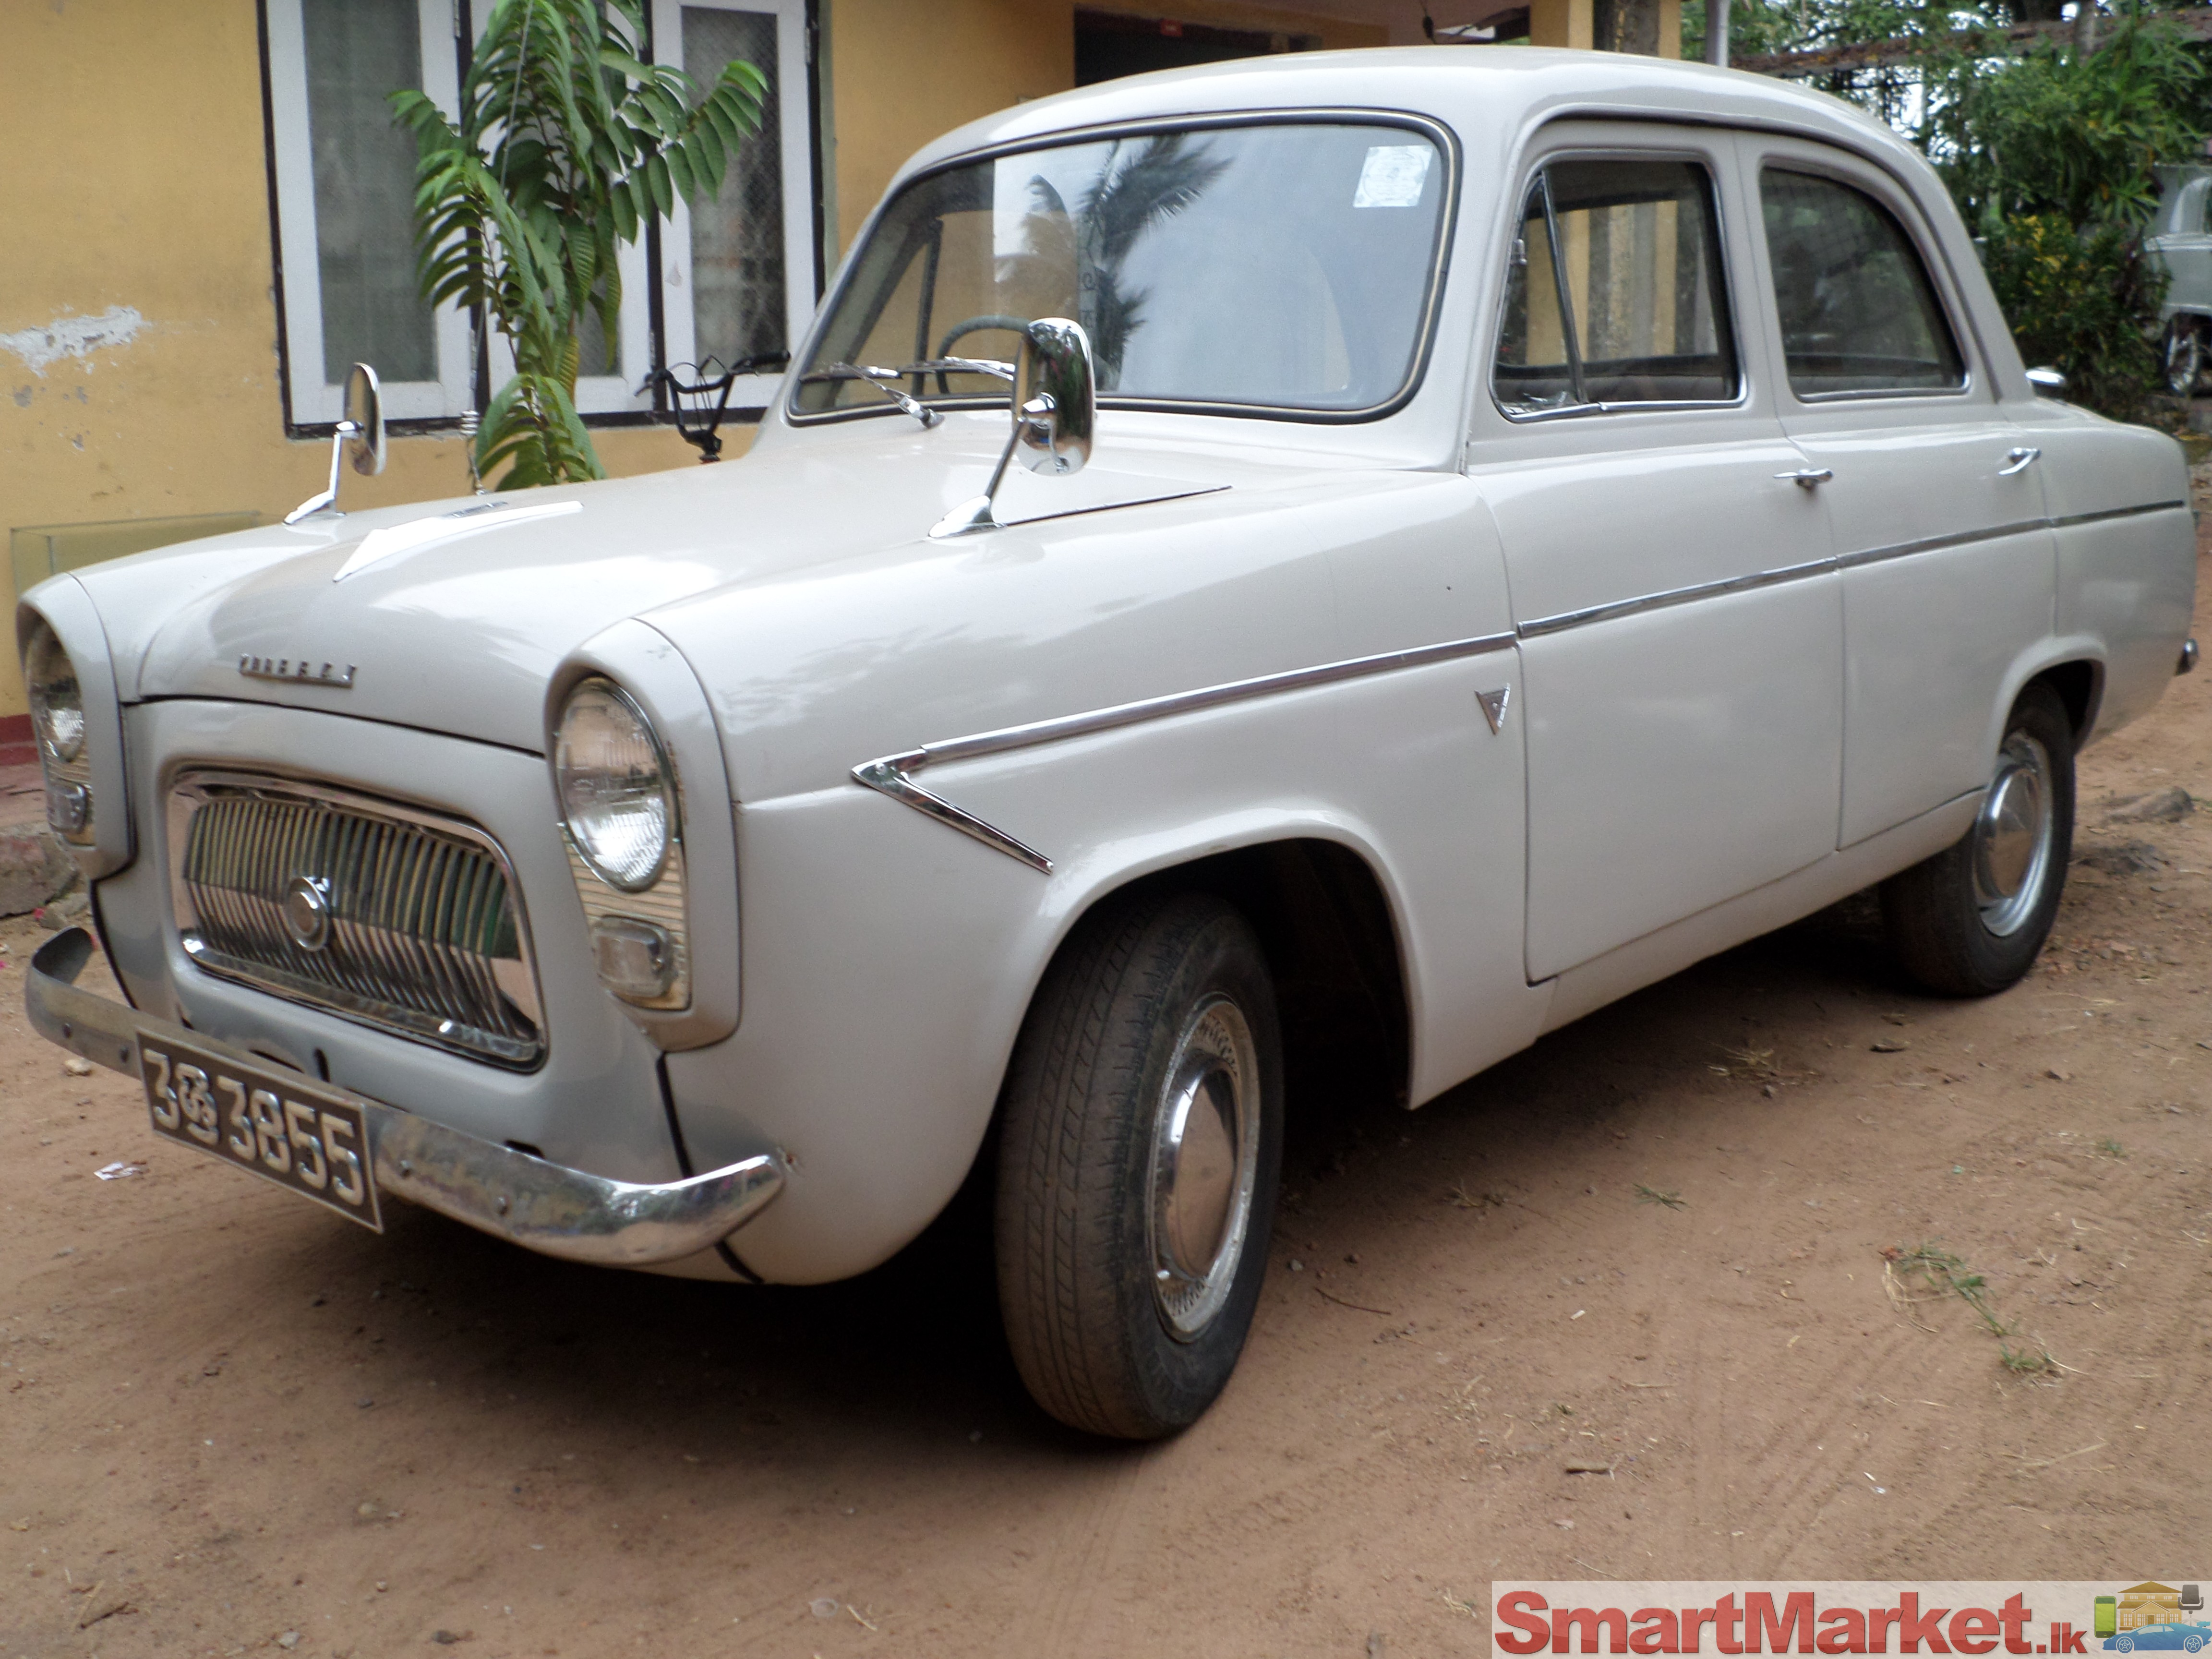 ford anglia sale in sri lanka with 730245 Ford Prefect Car For Sale on AdDetailSell furthermore Cal872 further Classic And Vintage besides 1960 Ford Anglia For Sale In Colombo further Ford Anglia Sale Kegalle 746854.